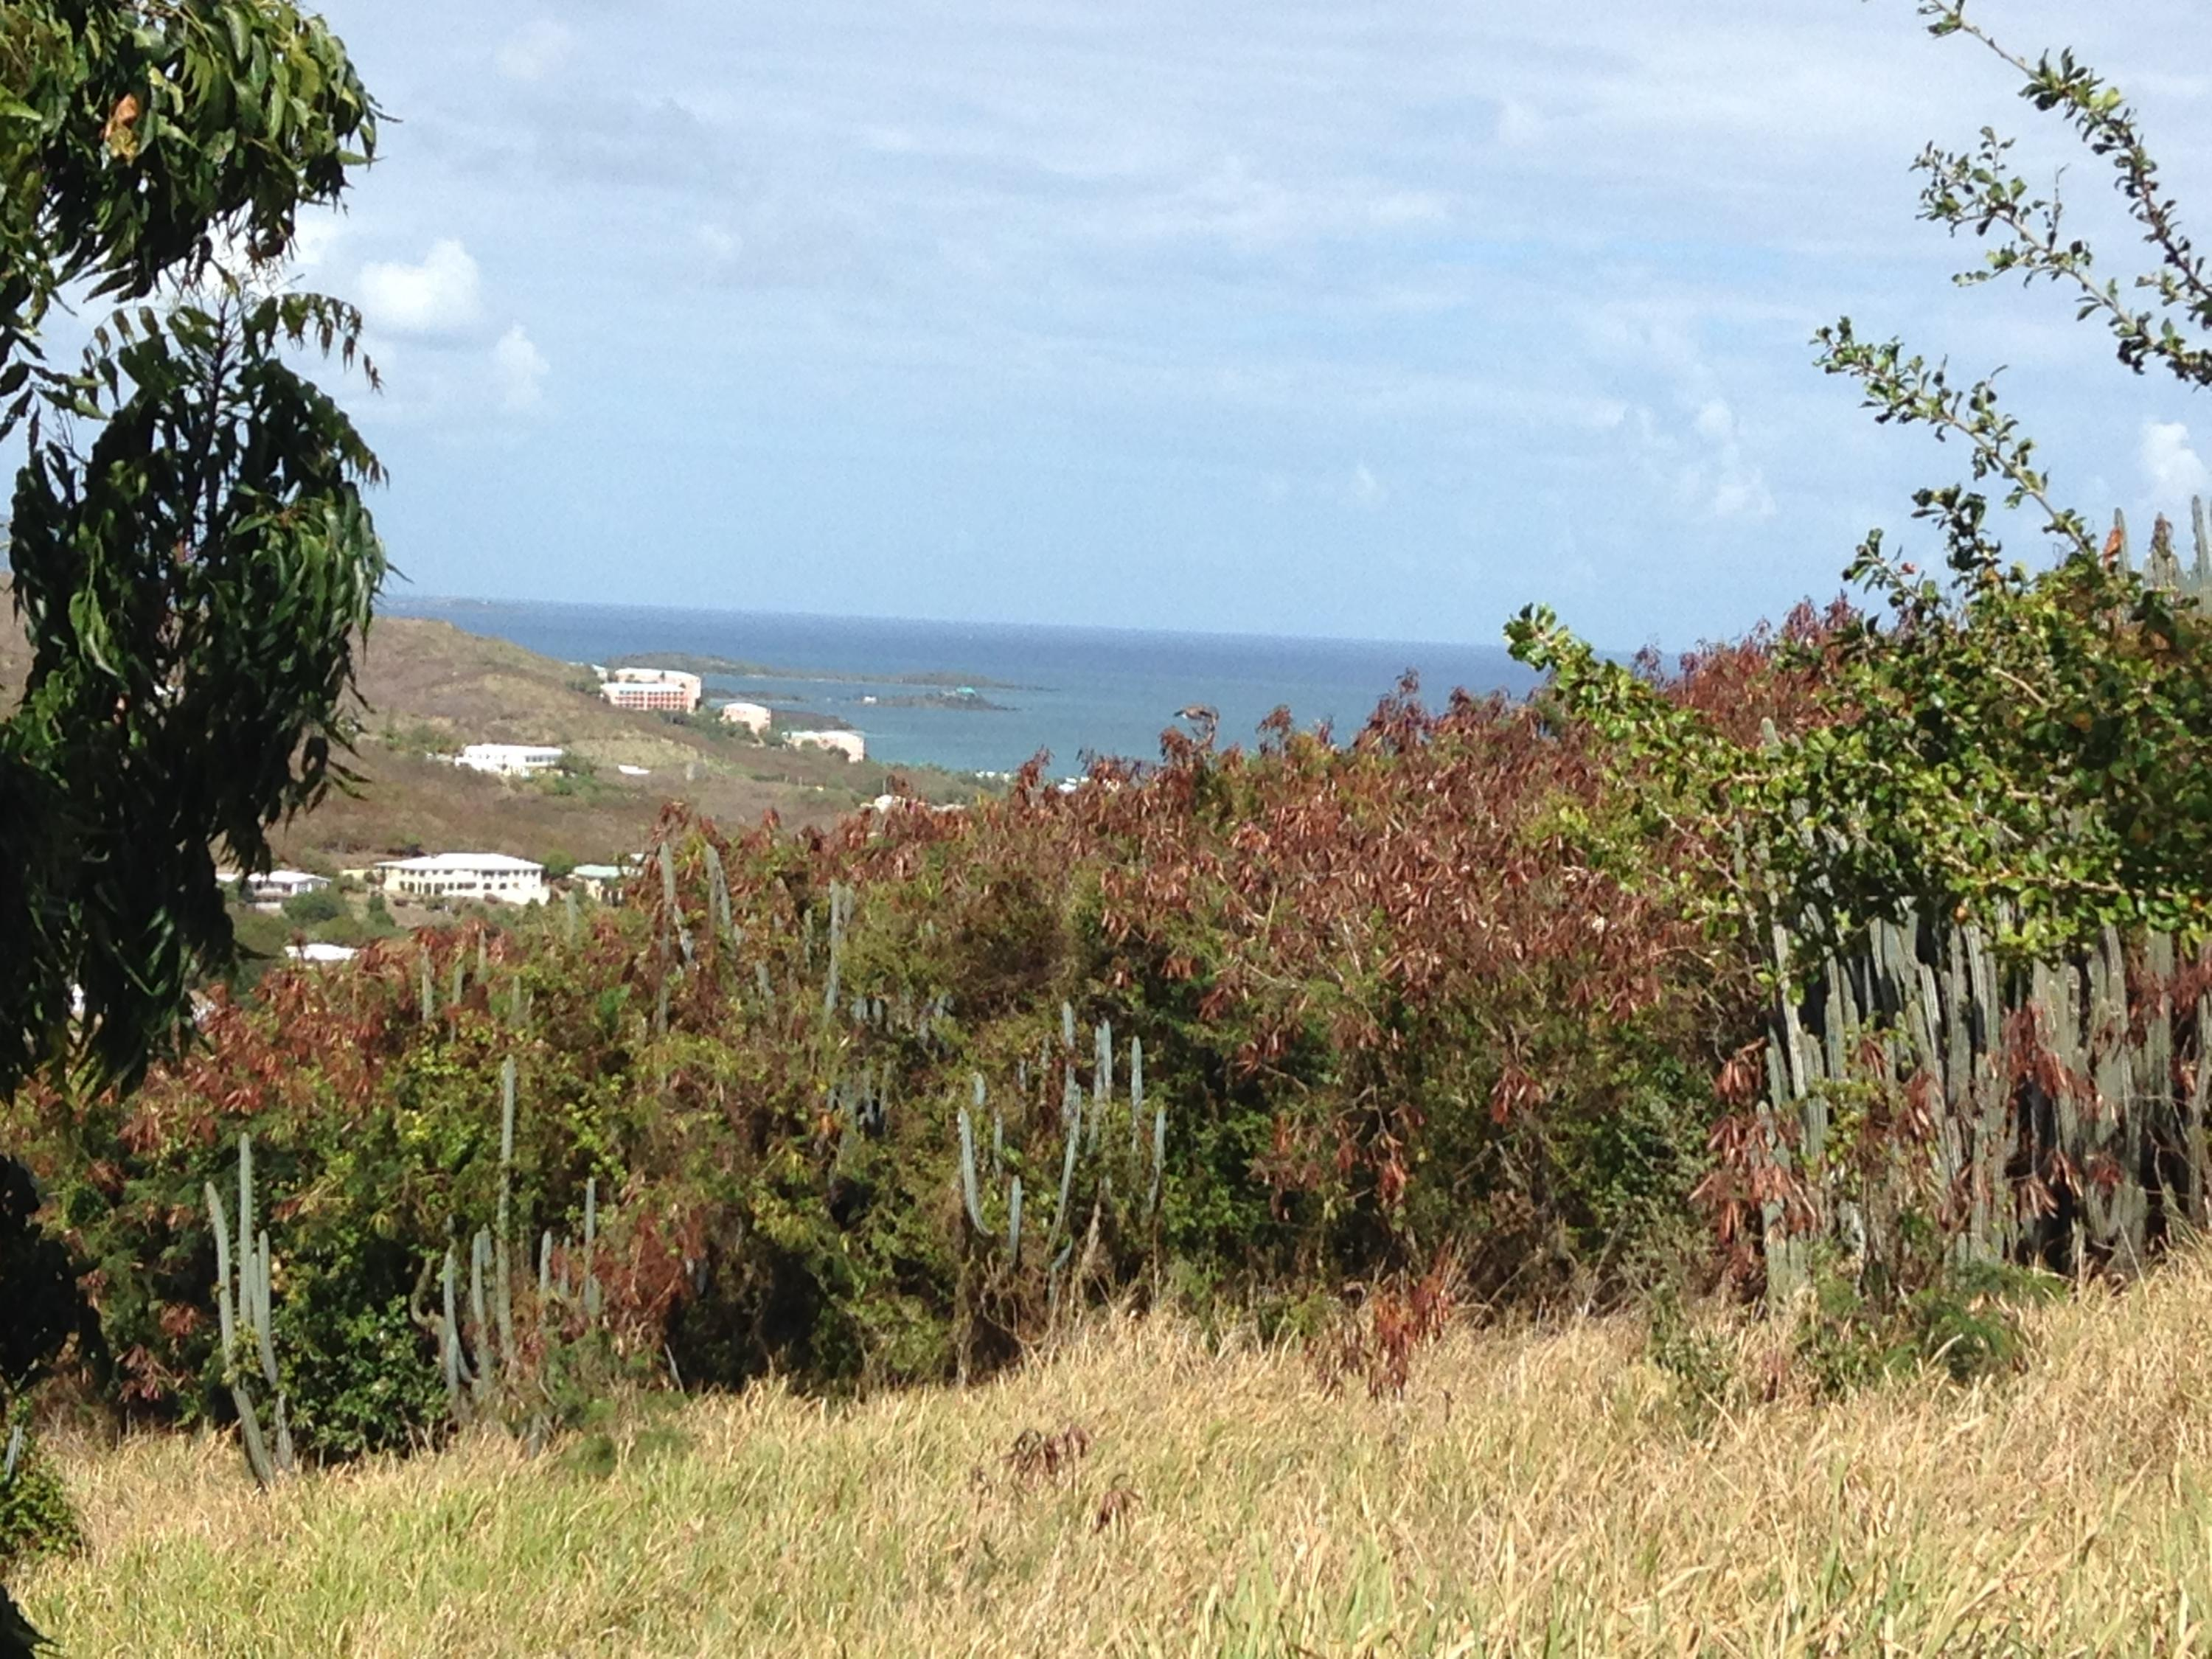 Land for Sale at 226 Cotton Valley EB 226 Cotton Valley EB St Croix, Virgin Islands 00820 United States Virgin Islands